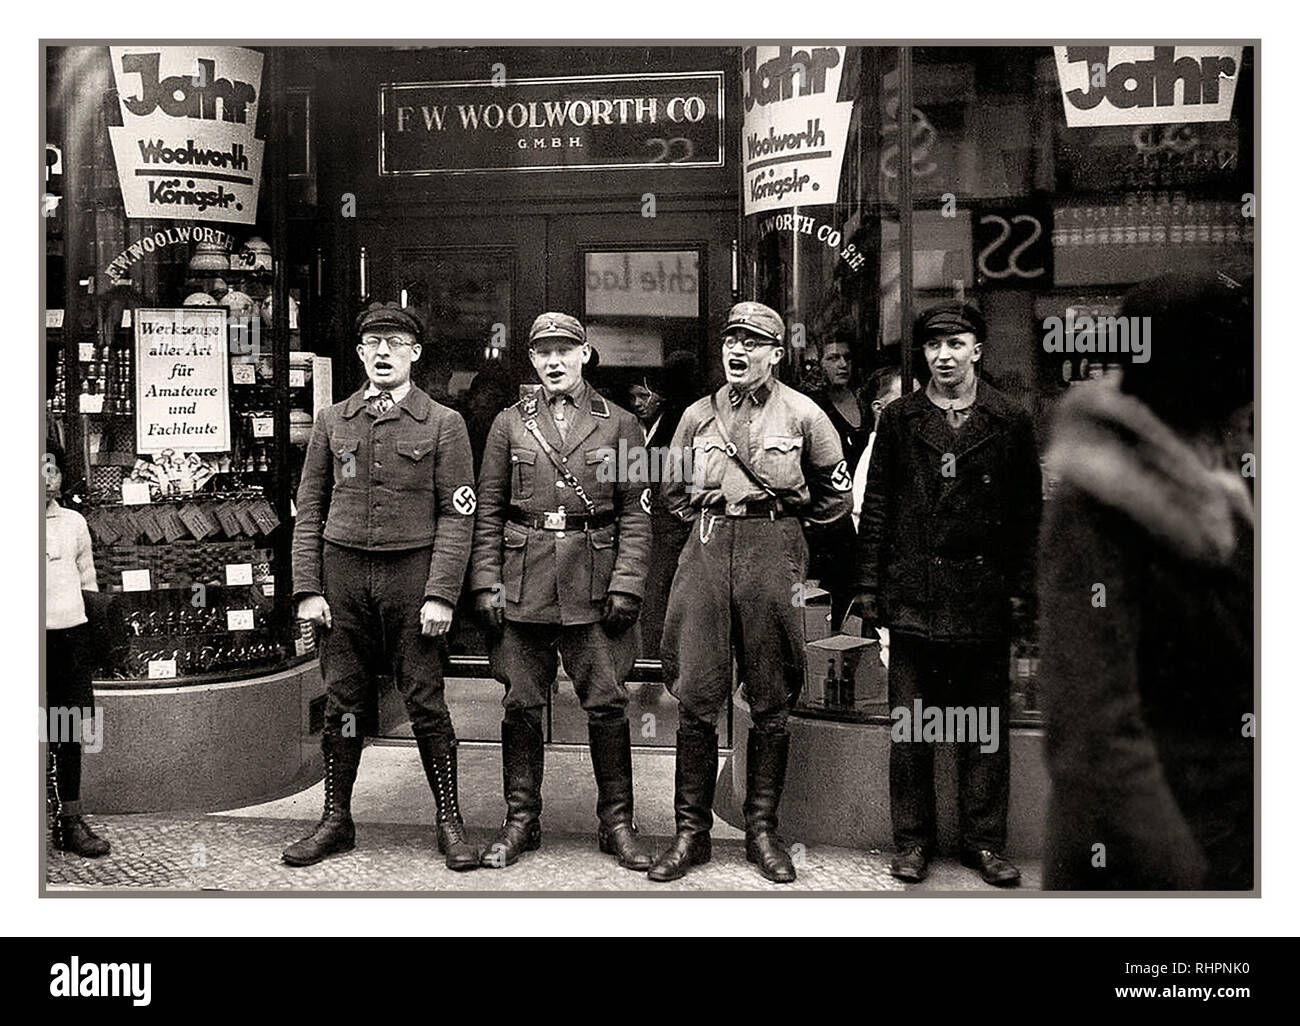 1930's anti-Jewish Nazis and NSDAP party members indulge in racist anti Jewish chanting, at entrance to German high street Woolworth store, to promote a boycott of the allegedly Jewish-founded Woolworths Germany 1933. - Stock Image